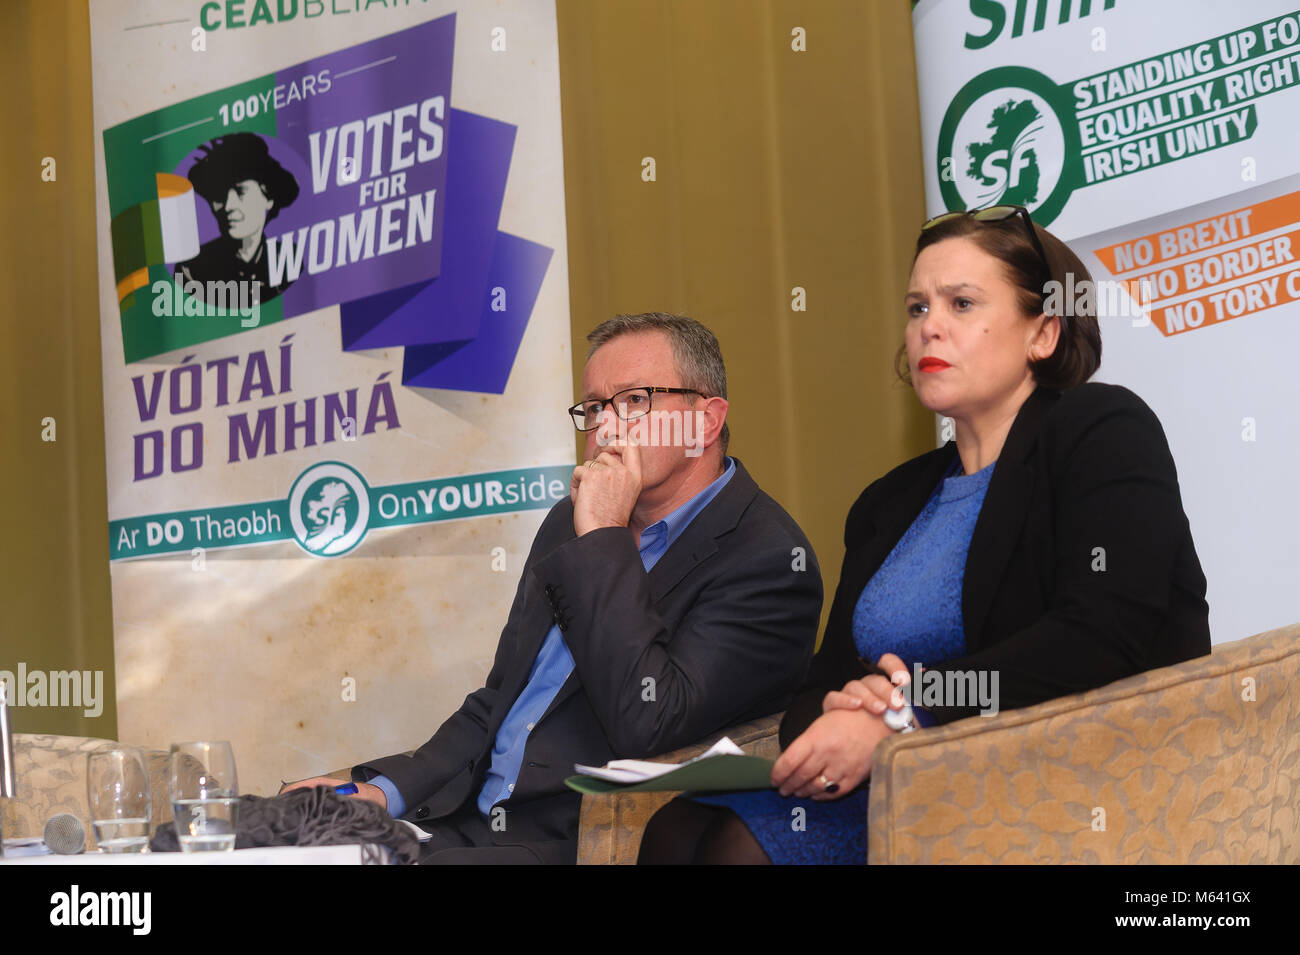 County Armagh, Northern Ireland. 27th Feb, 2018. Mary Lou McDonald, Sinn Fein President, right, with Conor Murphy - Stock Image